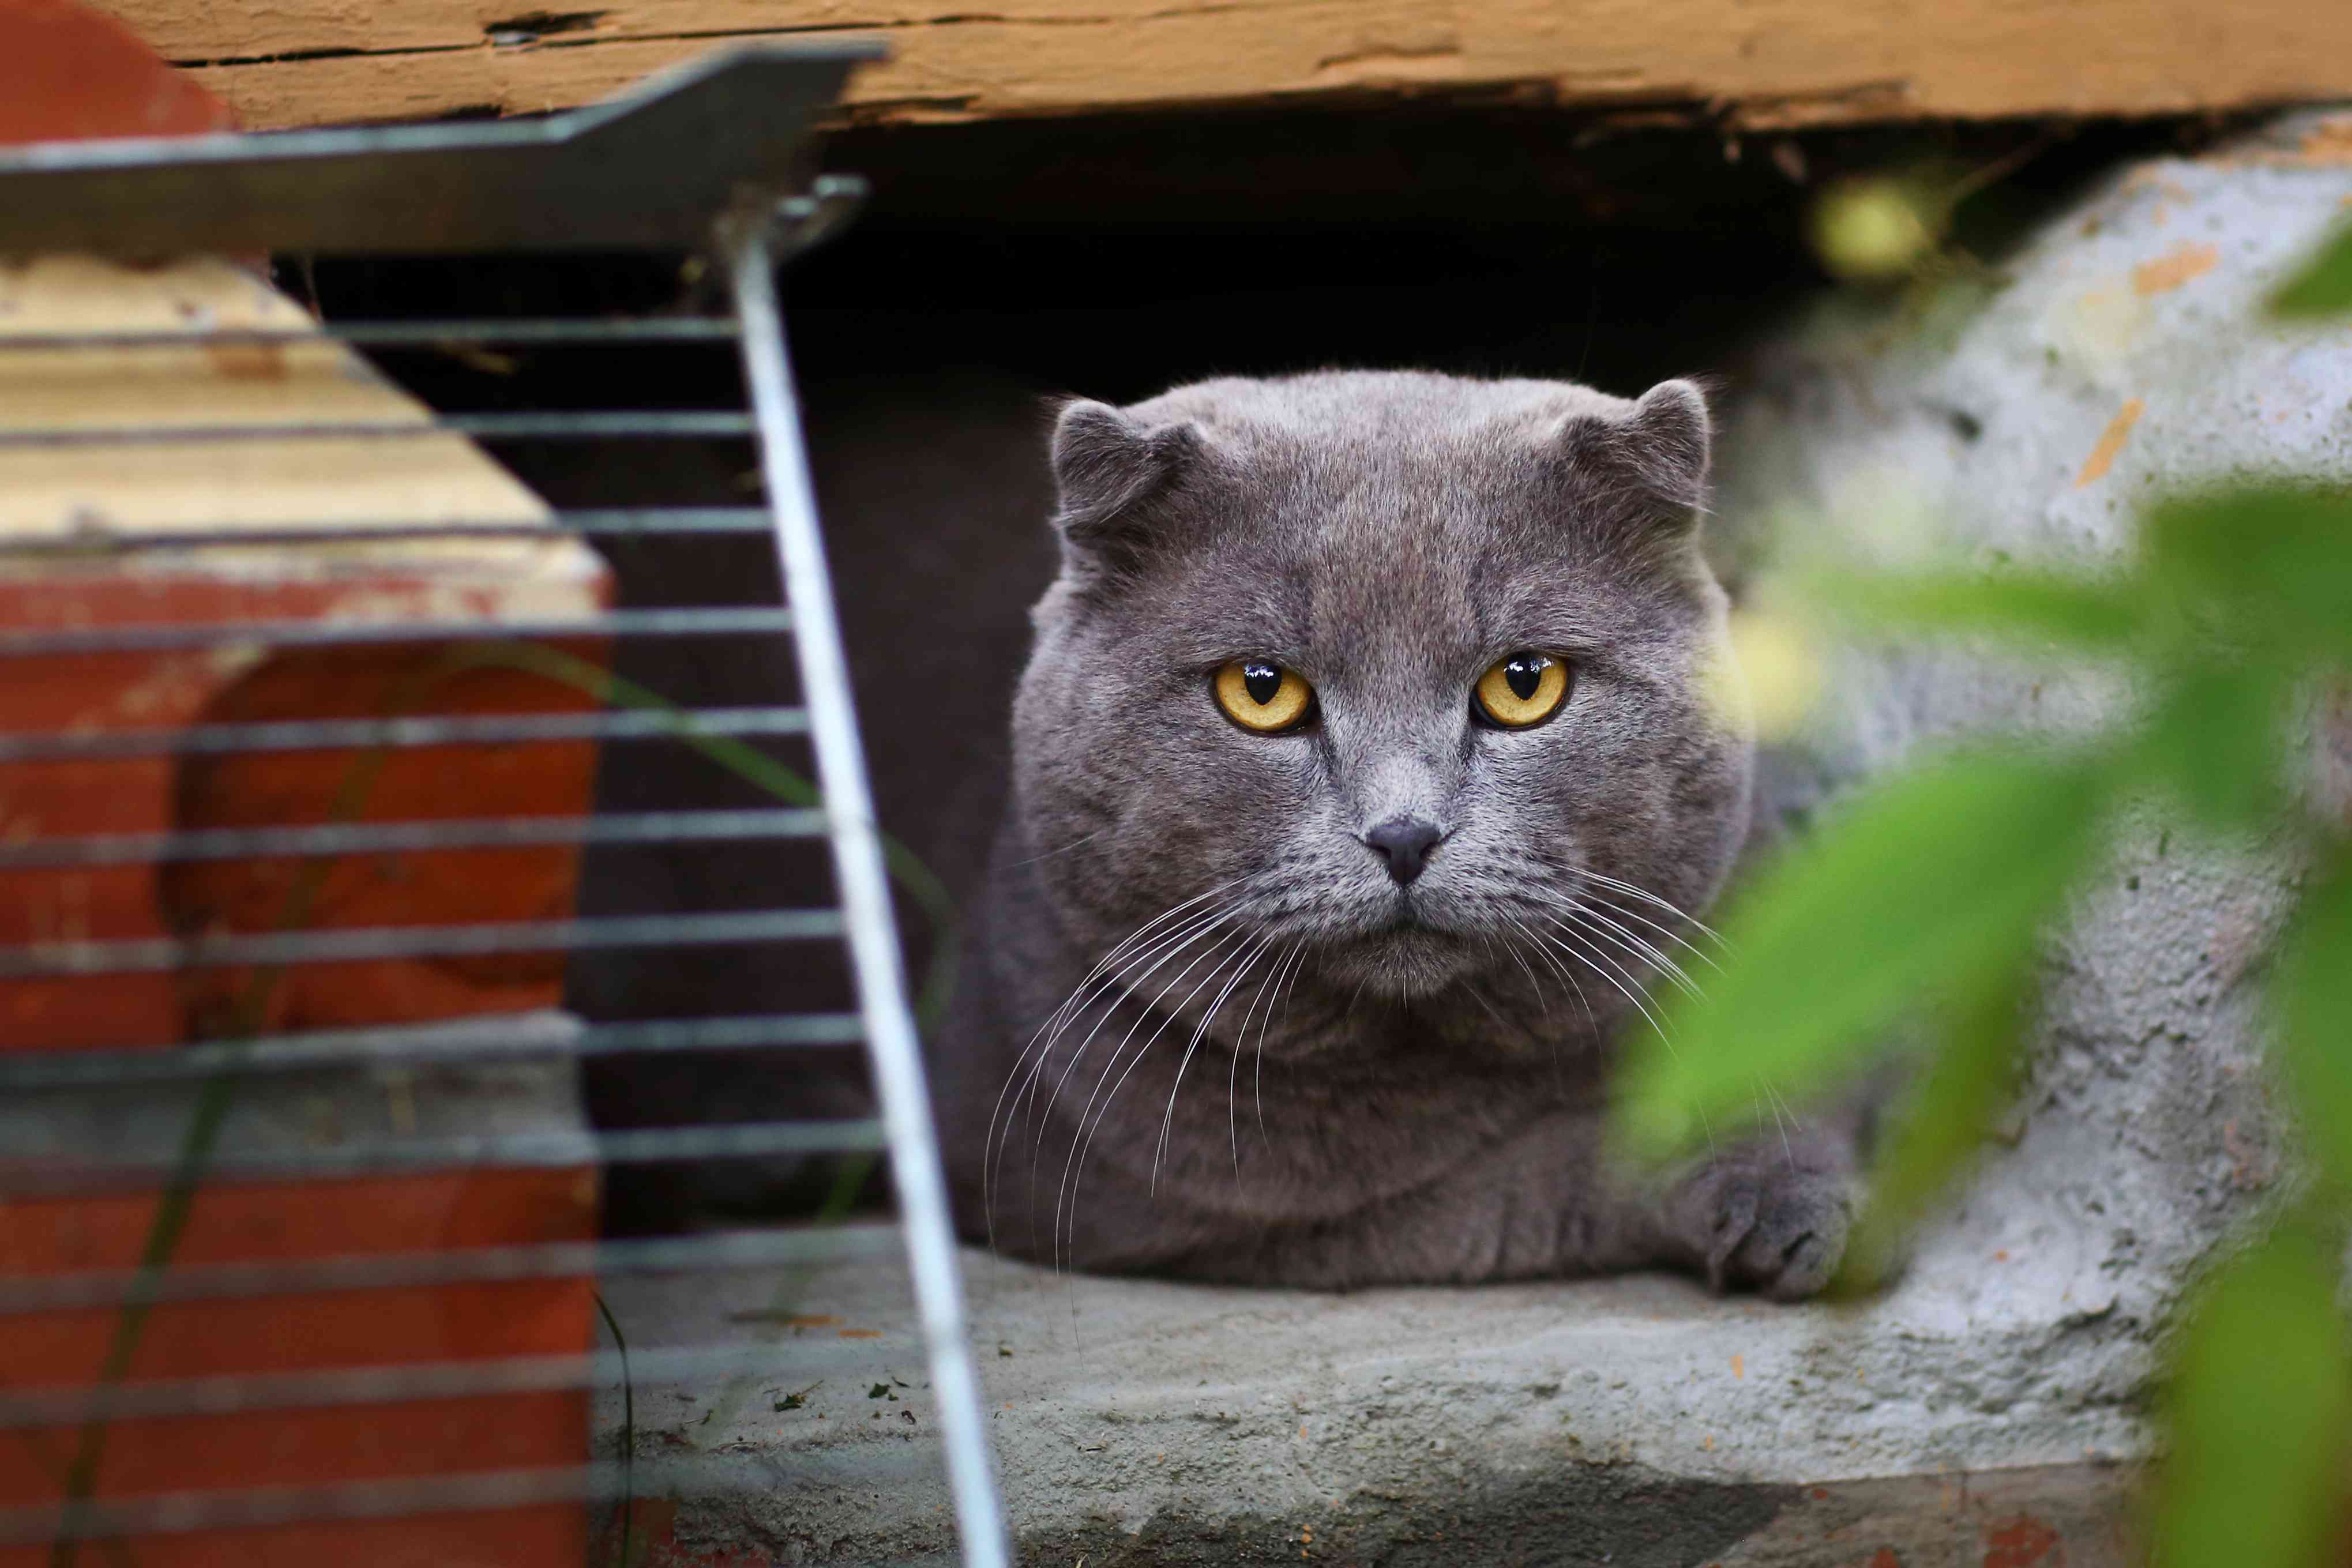 Close-up of gray cat's face